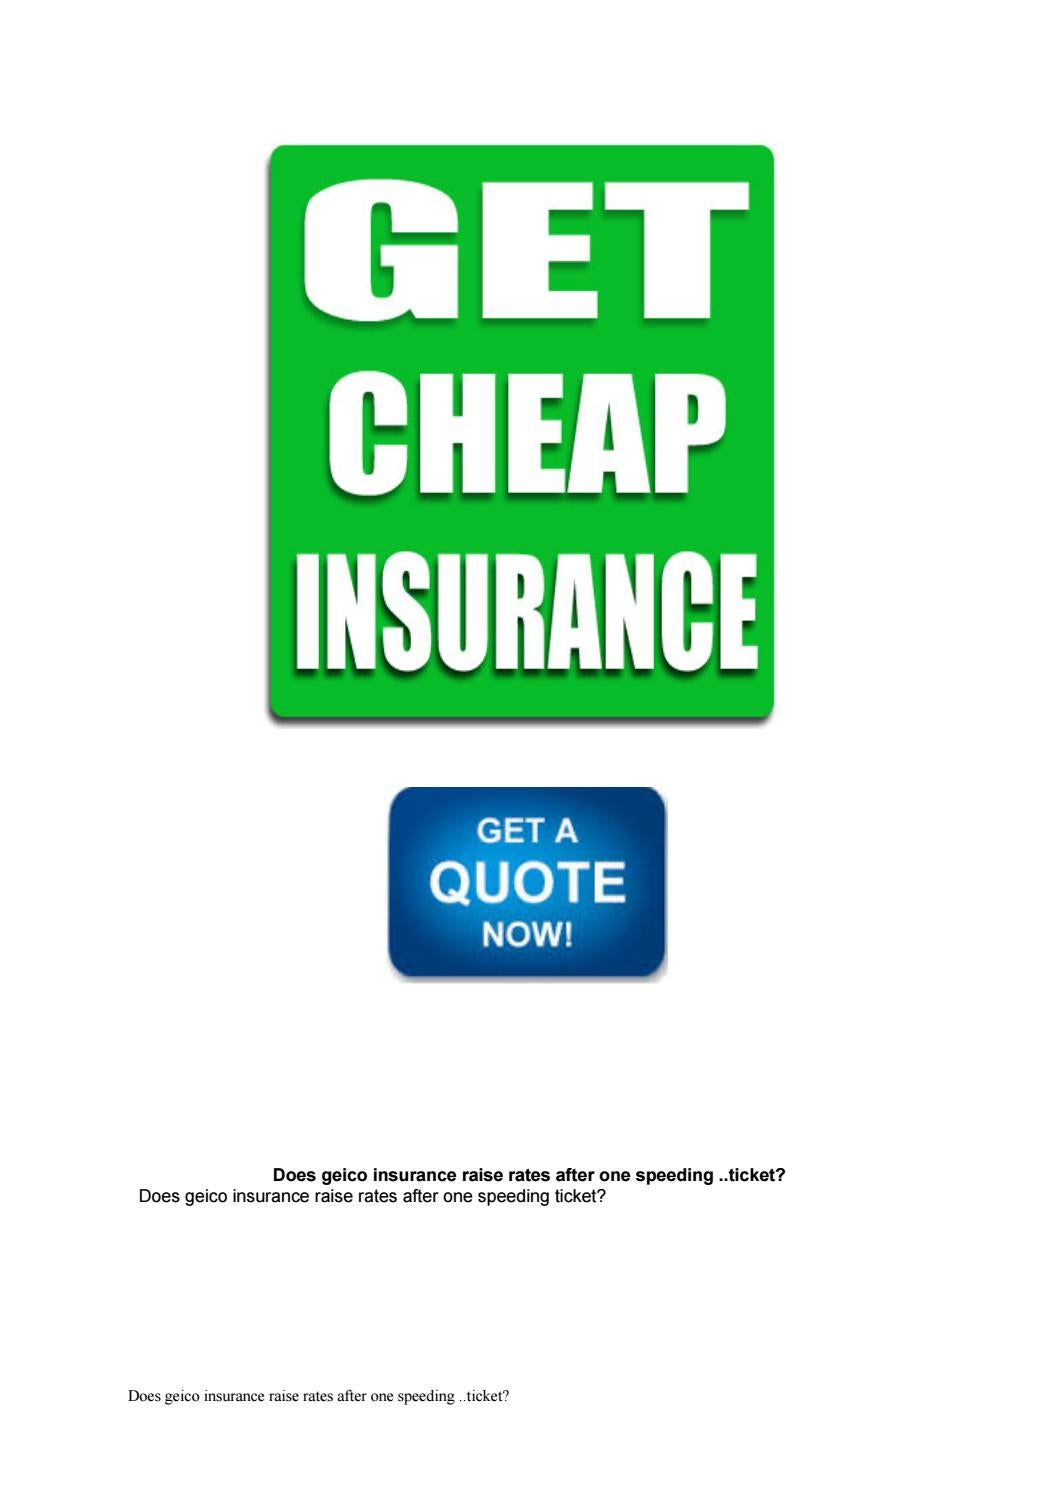 Geico Life Insurance Quotes Does Geico Insurance Raise Rates After One Speeding.ticket.